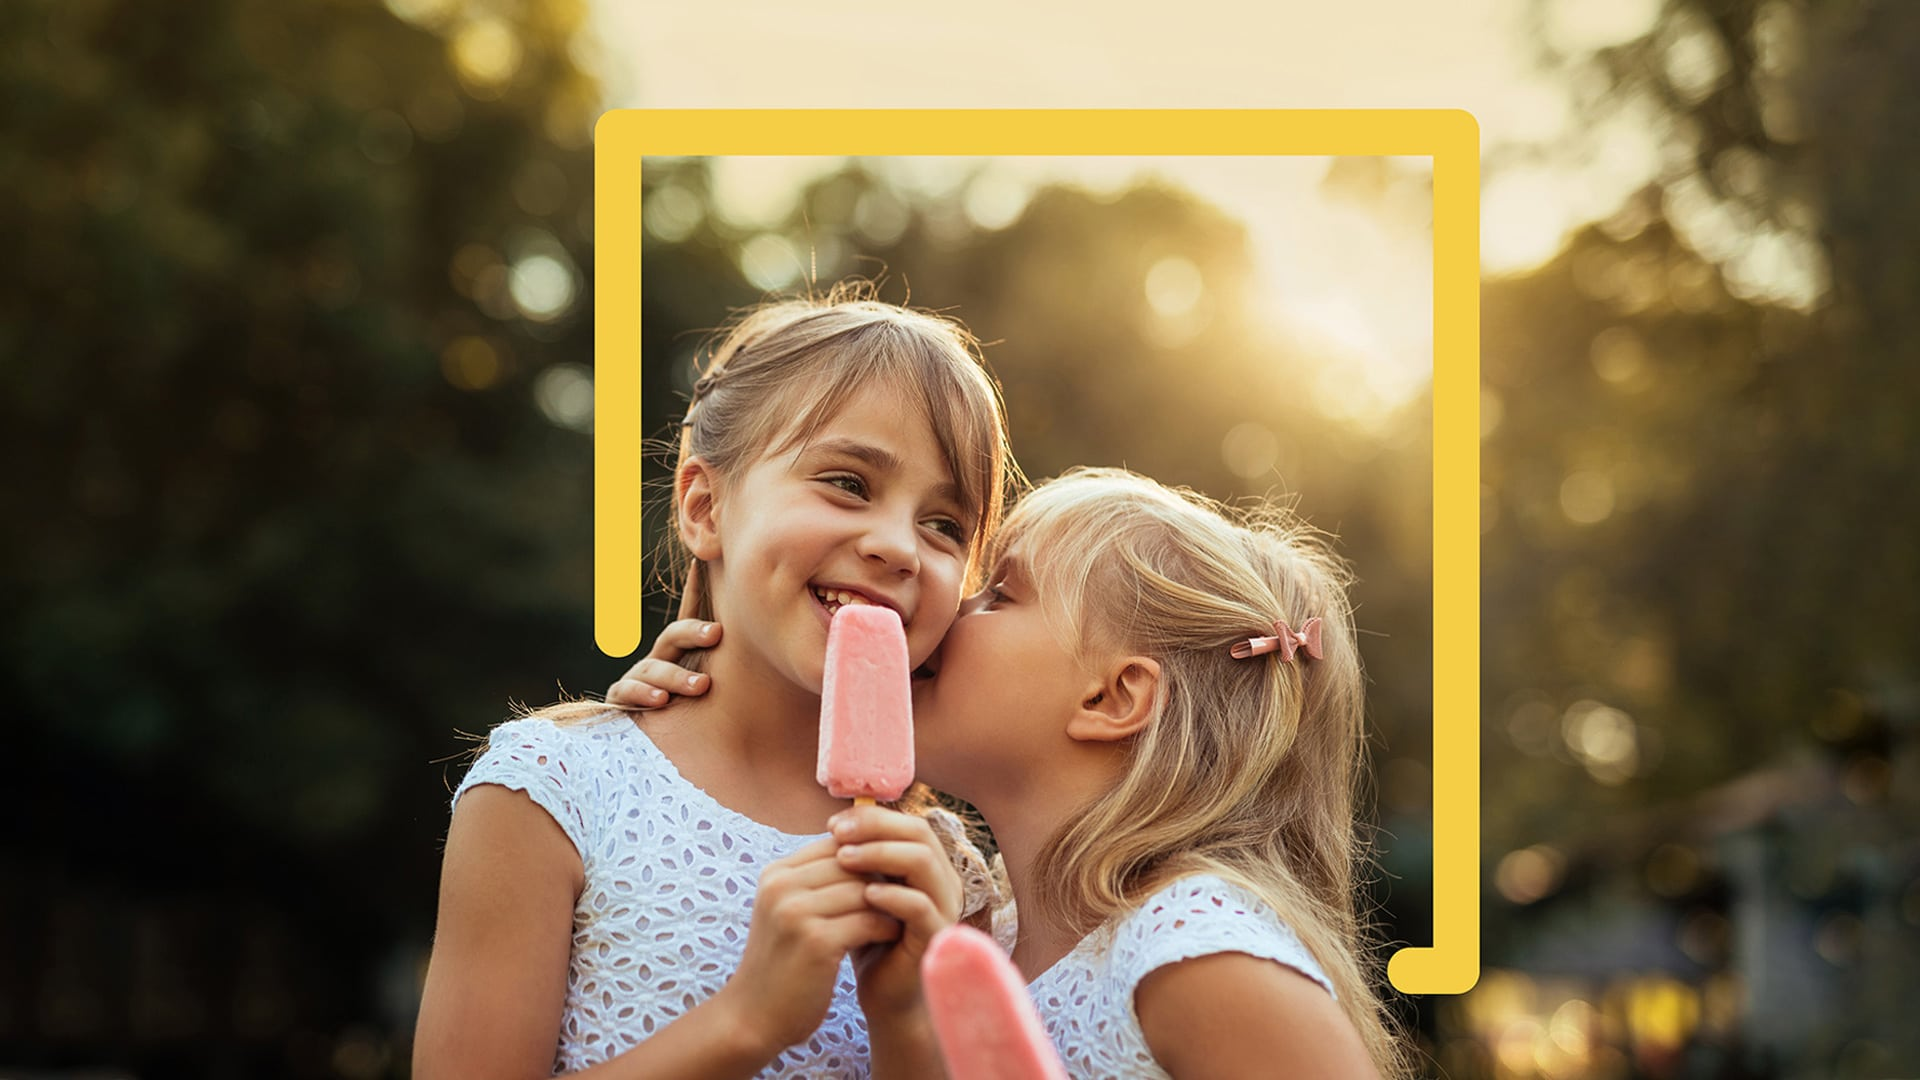 JUFA Hotels Happy together Mädchen Eis